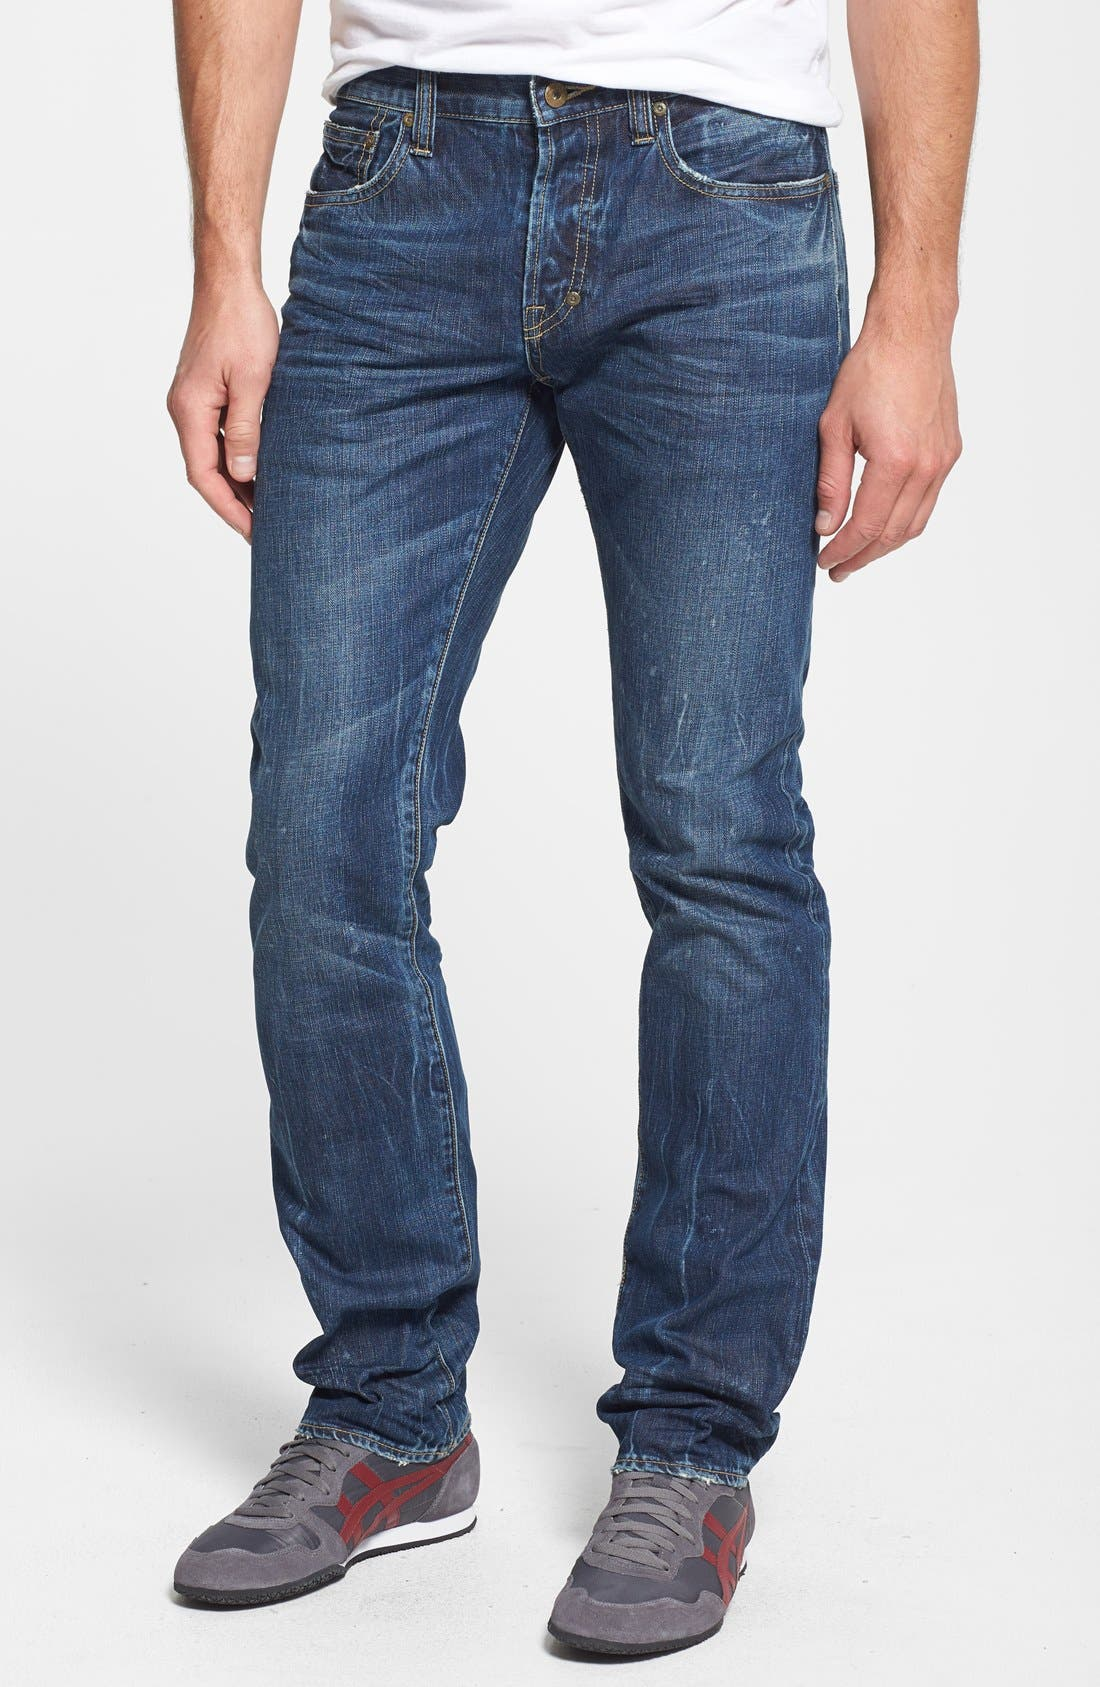 Alternate Image 1 Selected - PRPS 'Demon' Straight Leg Jeans (Enzyme)